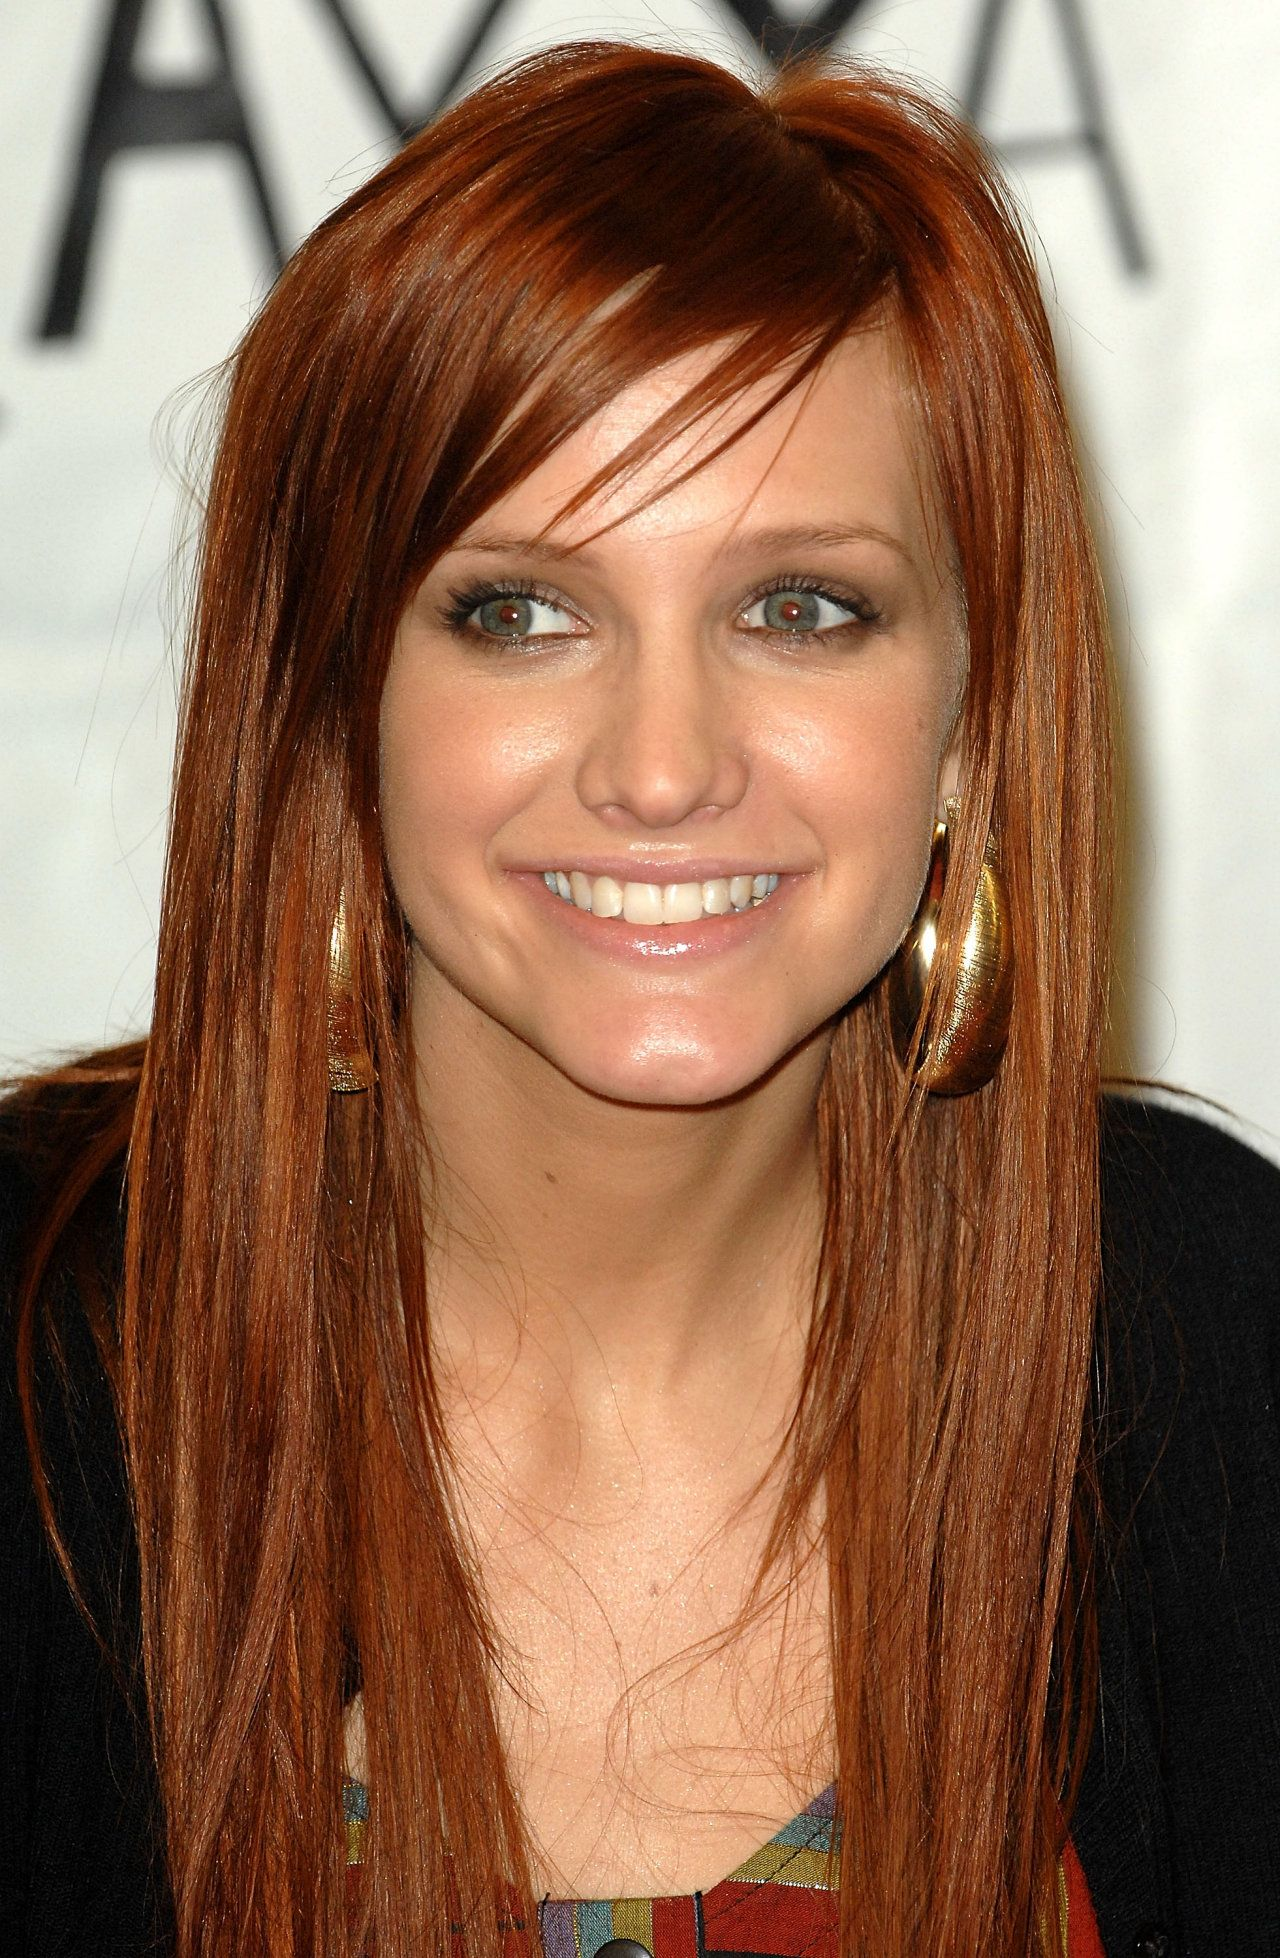 Ashlee Simpson Google Search I Like The Way Her Bangs Are With Images Hair Romance Cool Hairstyles Long Hair Styles